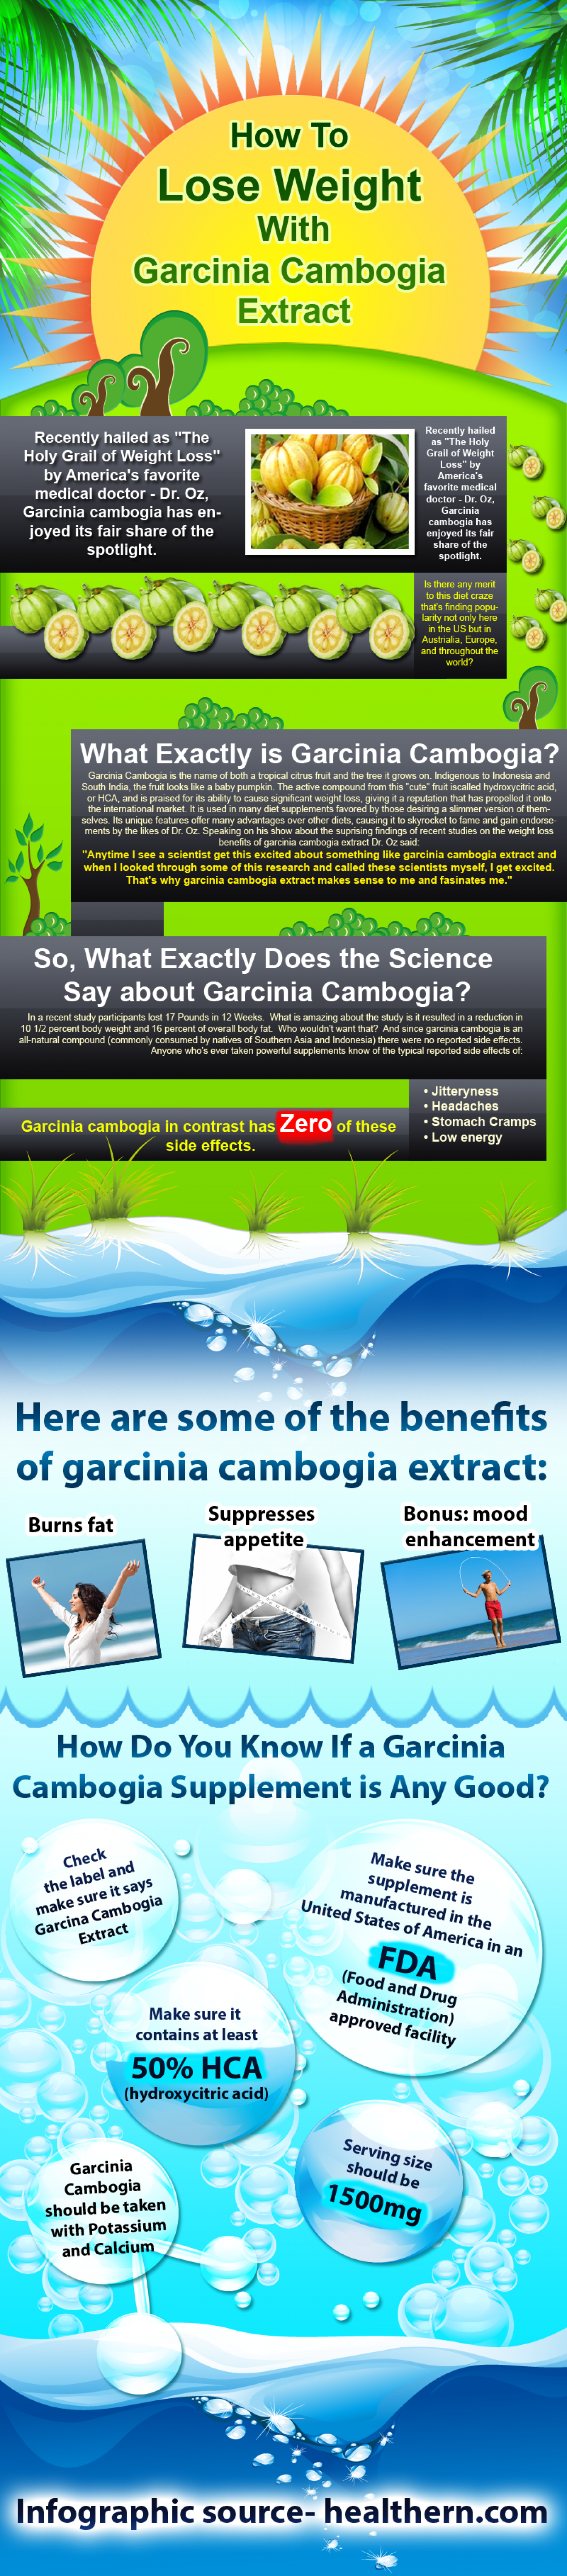 Weigth Loss by Gracinia Combogia Extract Infographic